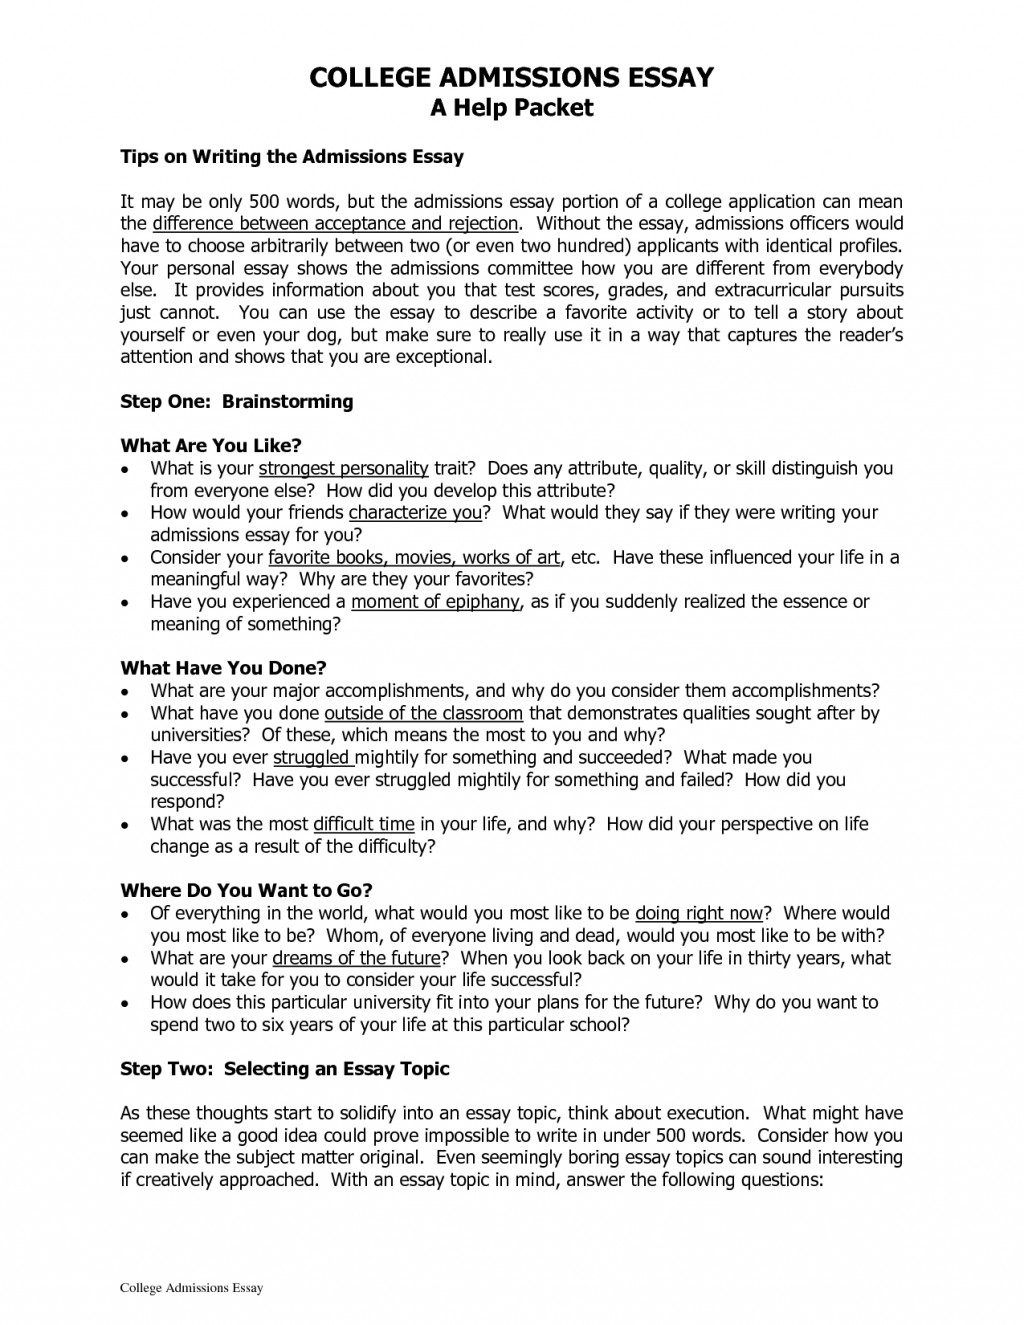 005 College Admissions Essay Exceptional Examples Admission About Yourself Large